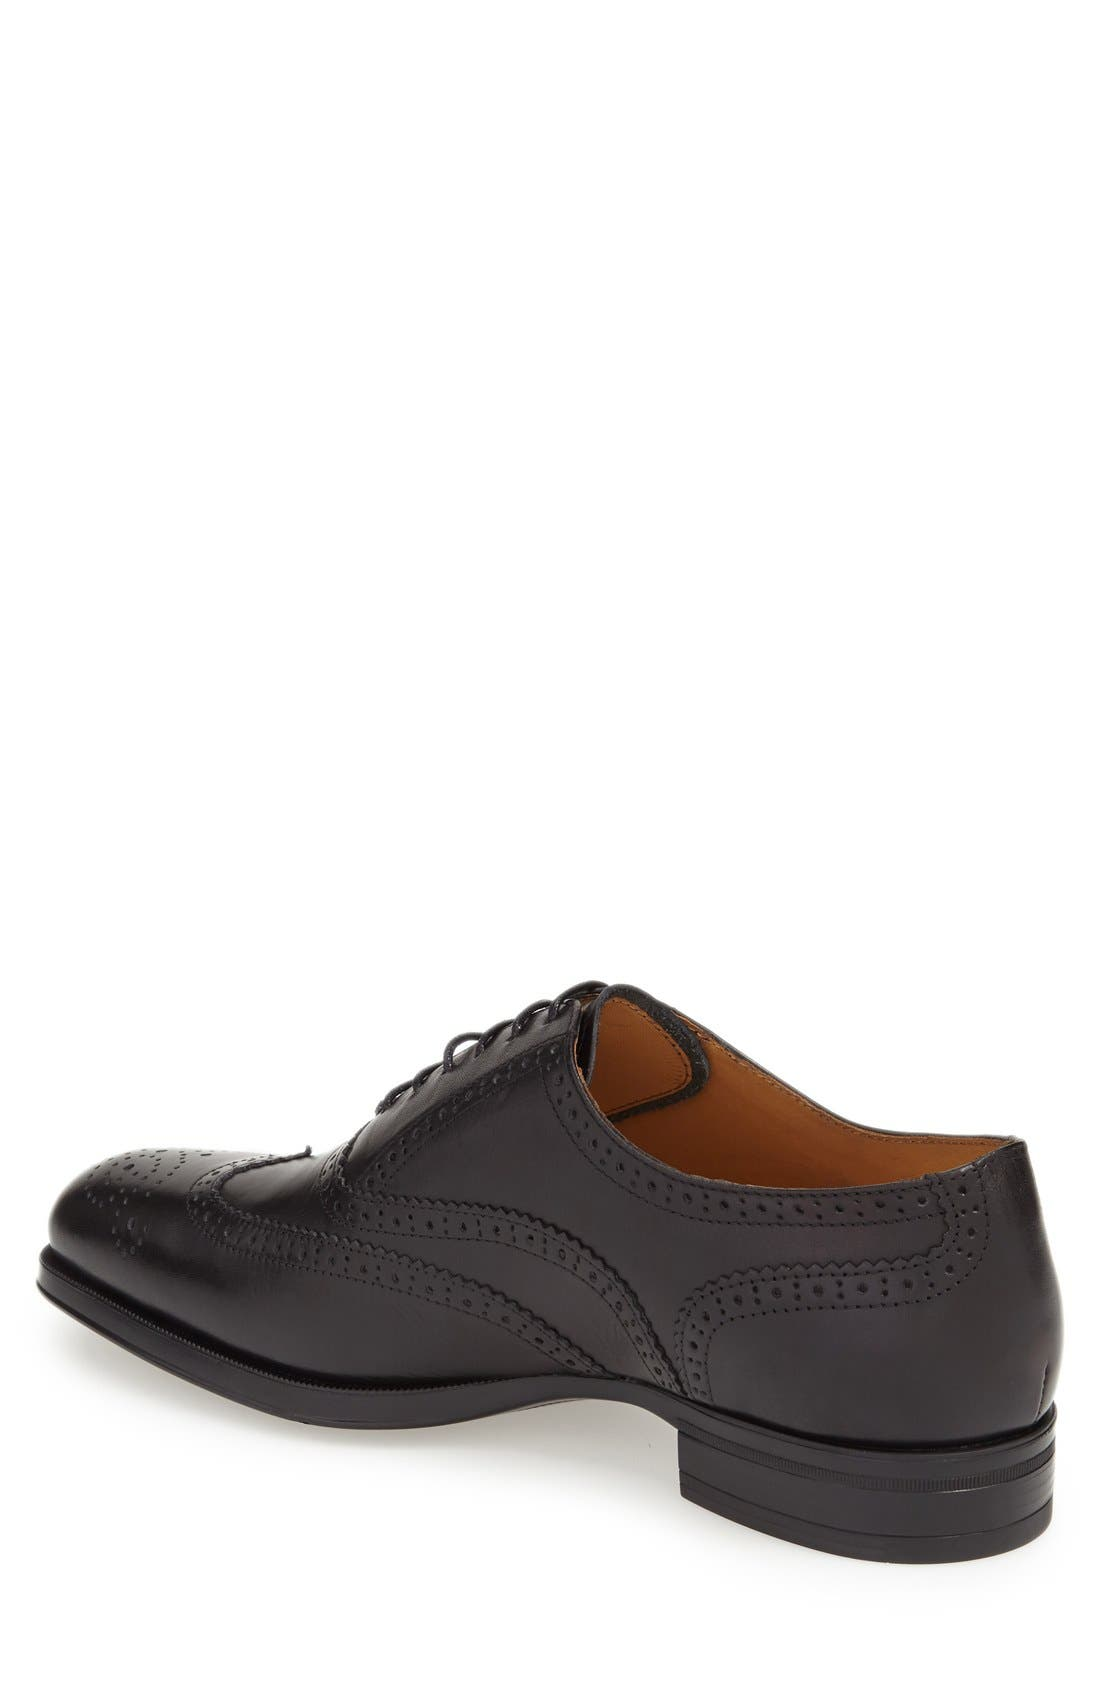 'Tallden' Wingtip,                             Alternate thumbnail 2, color,                             Black Leather